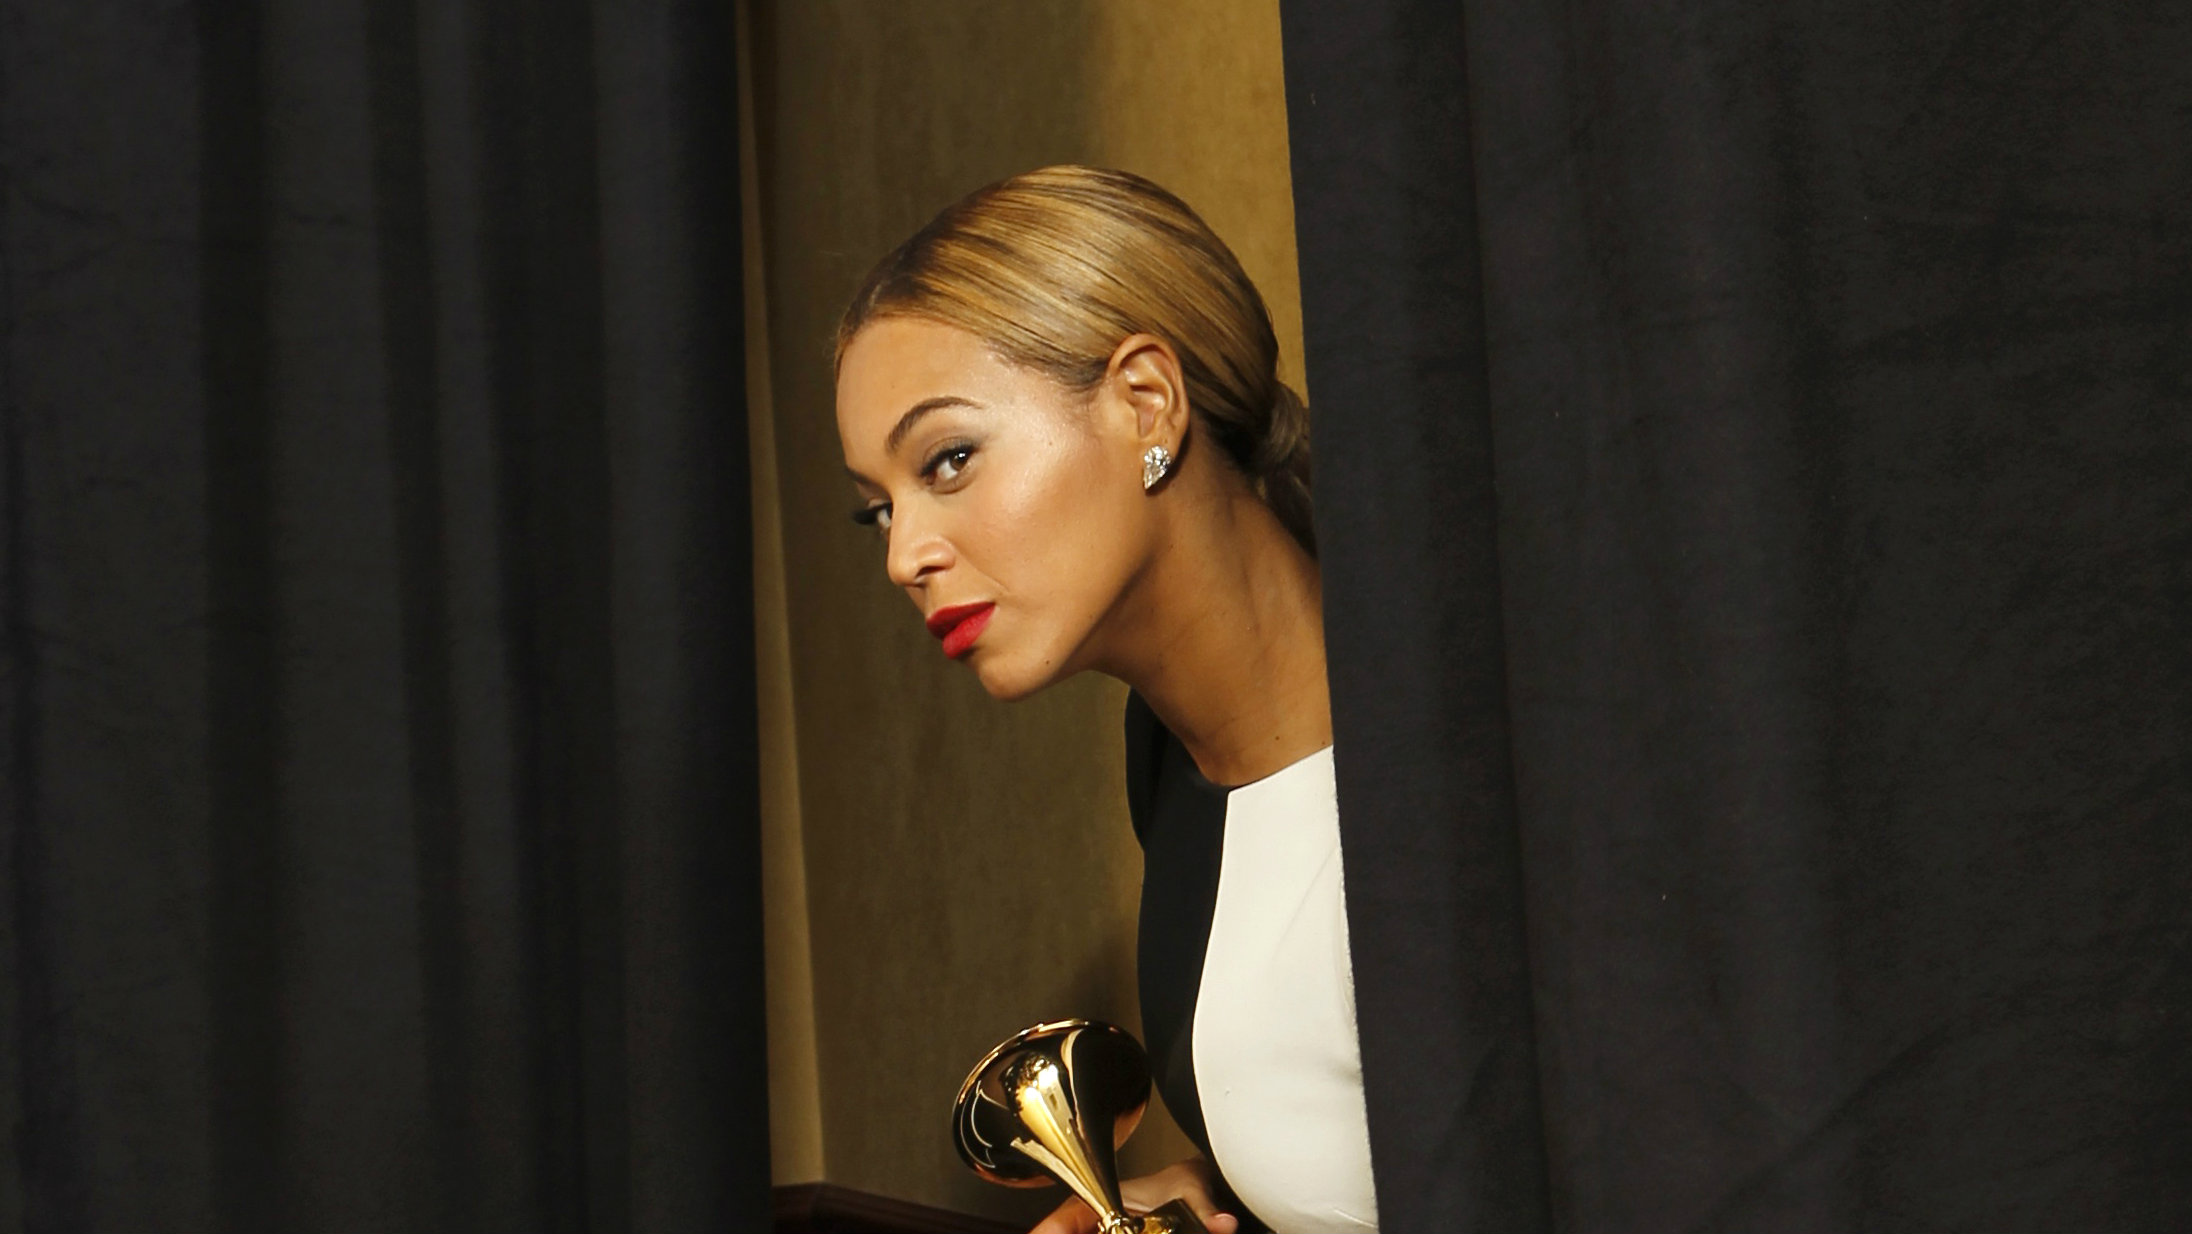 """Beyonce looks out at the photographers as she comes backstage to pose with her award for Best Traditional R&B Performance for """"Love On Top"""" at the 55th annual Grammy Awards in Los Angeles, California February 10, 2013. REUTERS/Mario Anzuoni (UNITED STATES - Tags: ENTERTAINMENT) (GRAMMYS-BACKSTAGE)"""